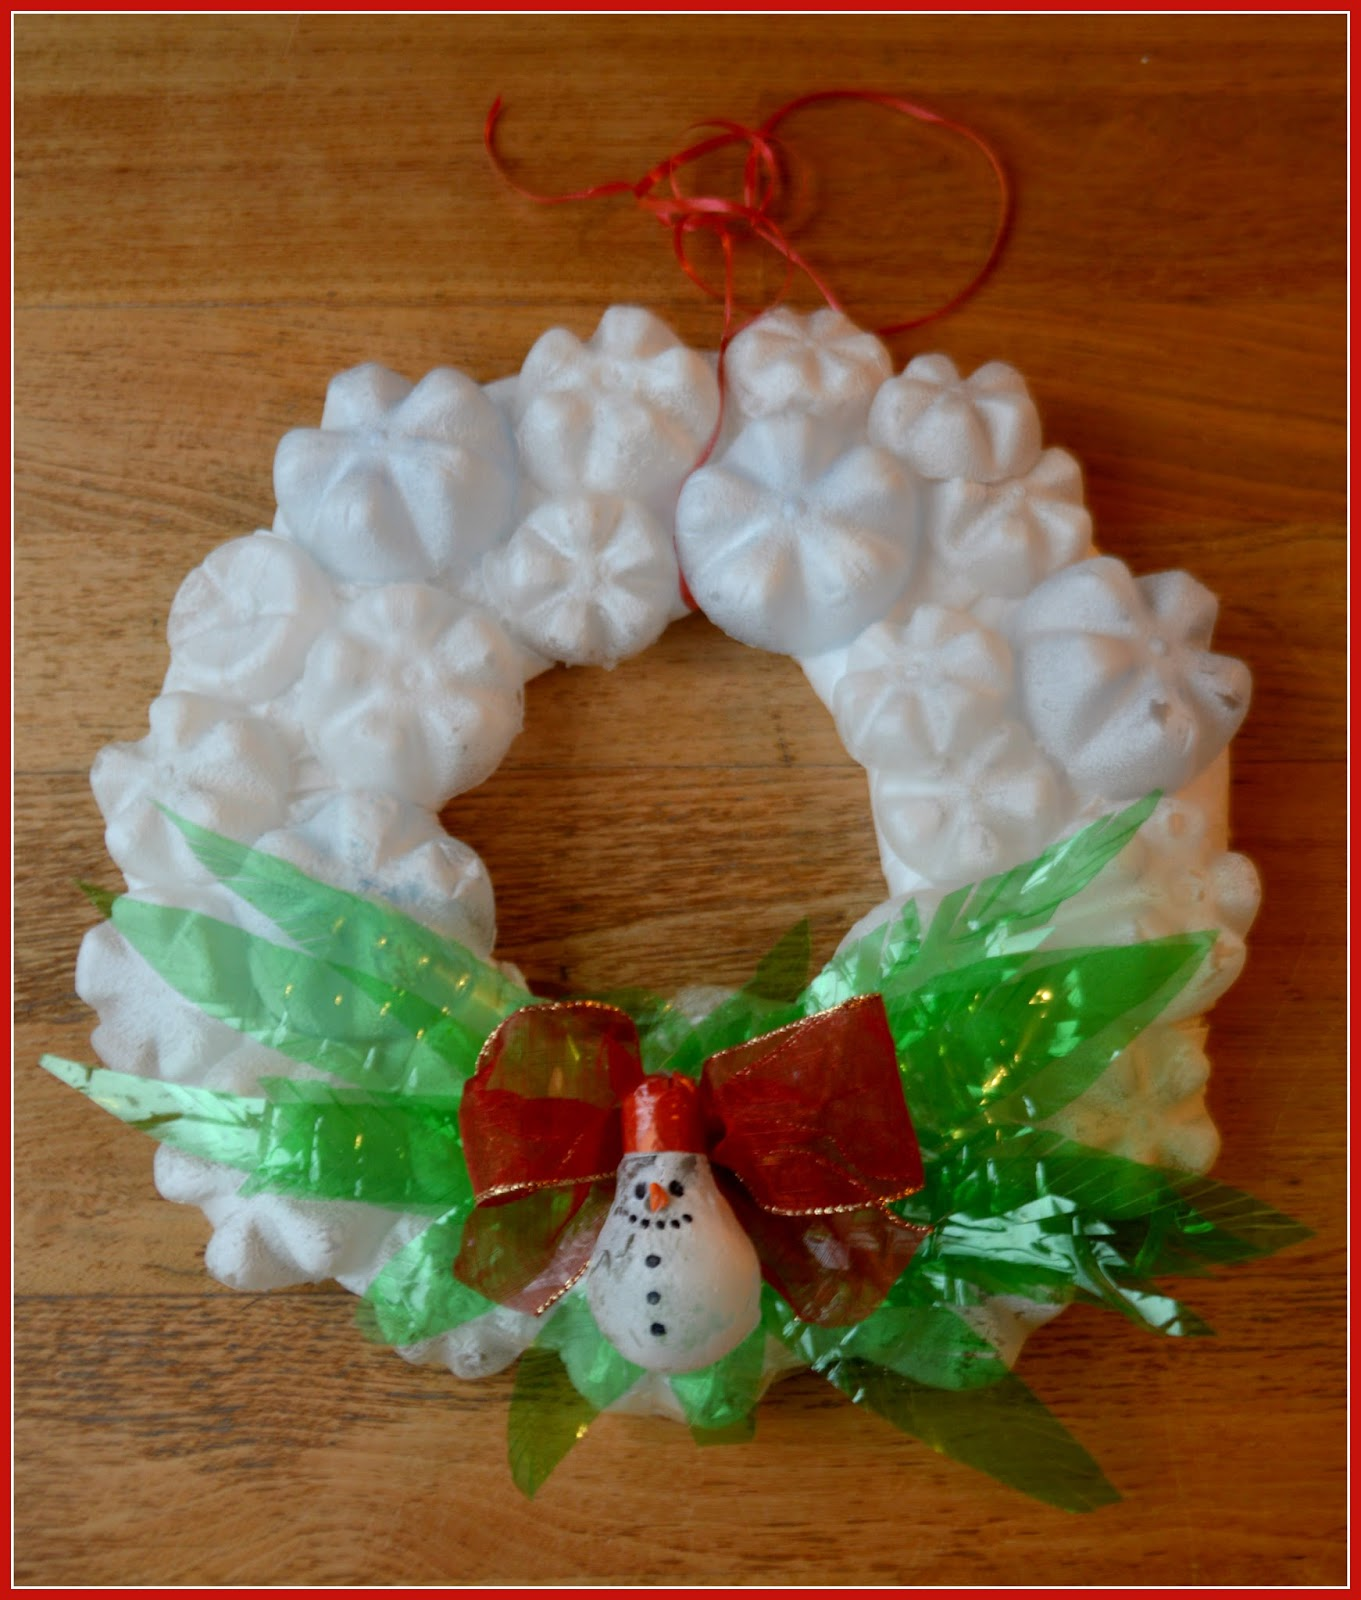 Recycled Plastic Christmas Tree: Creatips@Hand: Xmas Wreath From Recycled Materials